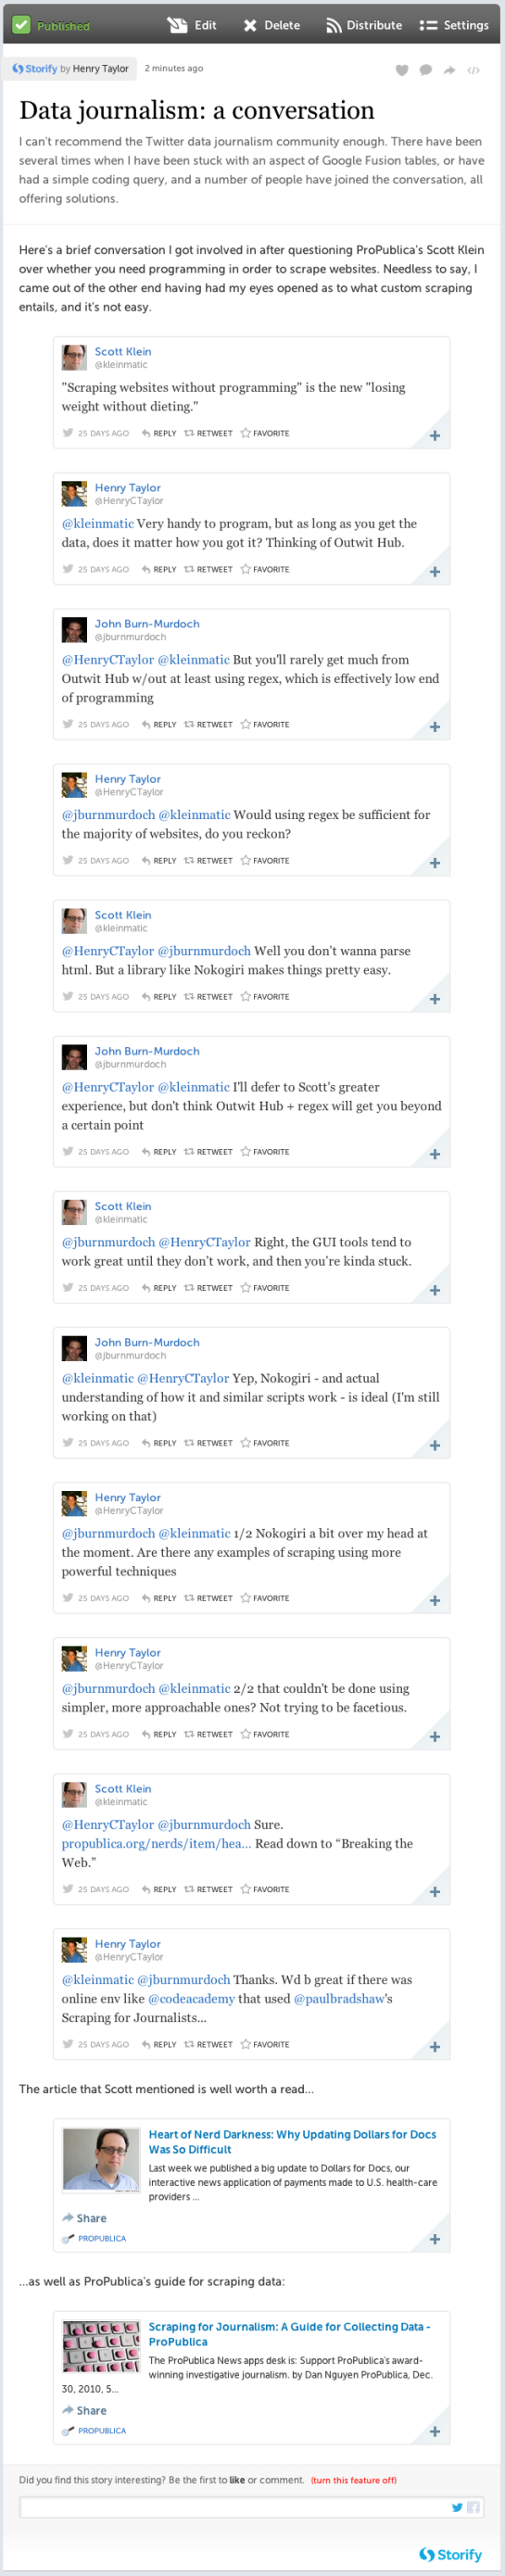 Data journalism: a conversation (with tweets) · henryctaylor · Storify